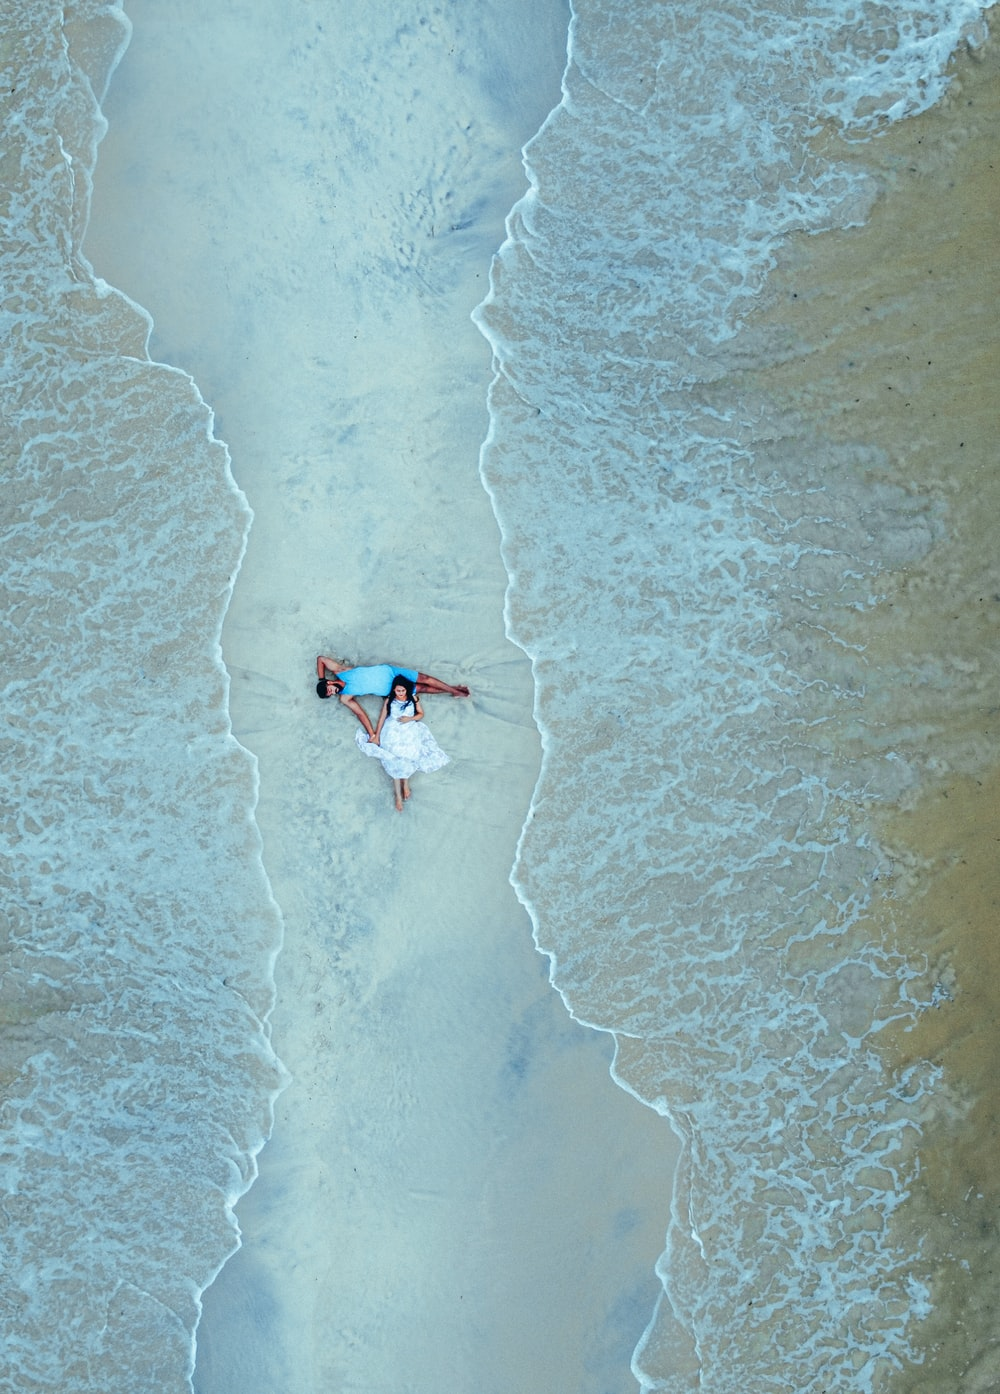 2 people surfing on sea waves during daytime